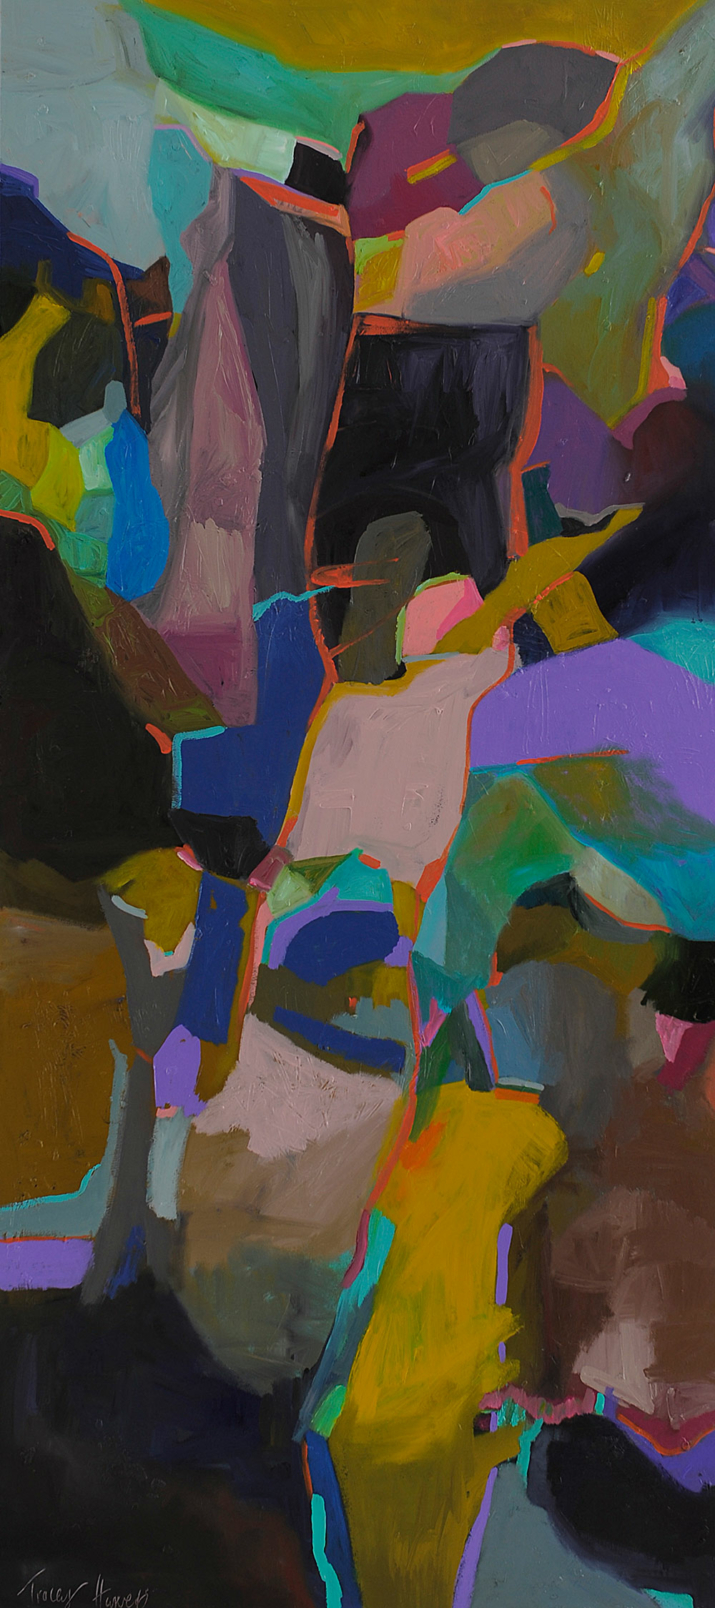 Raw Formation 183x81cm acrylic and eggshell on canvas